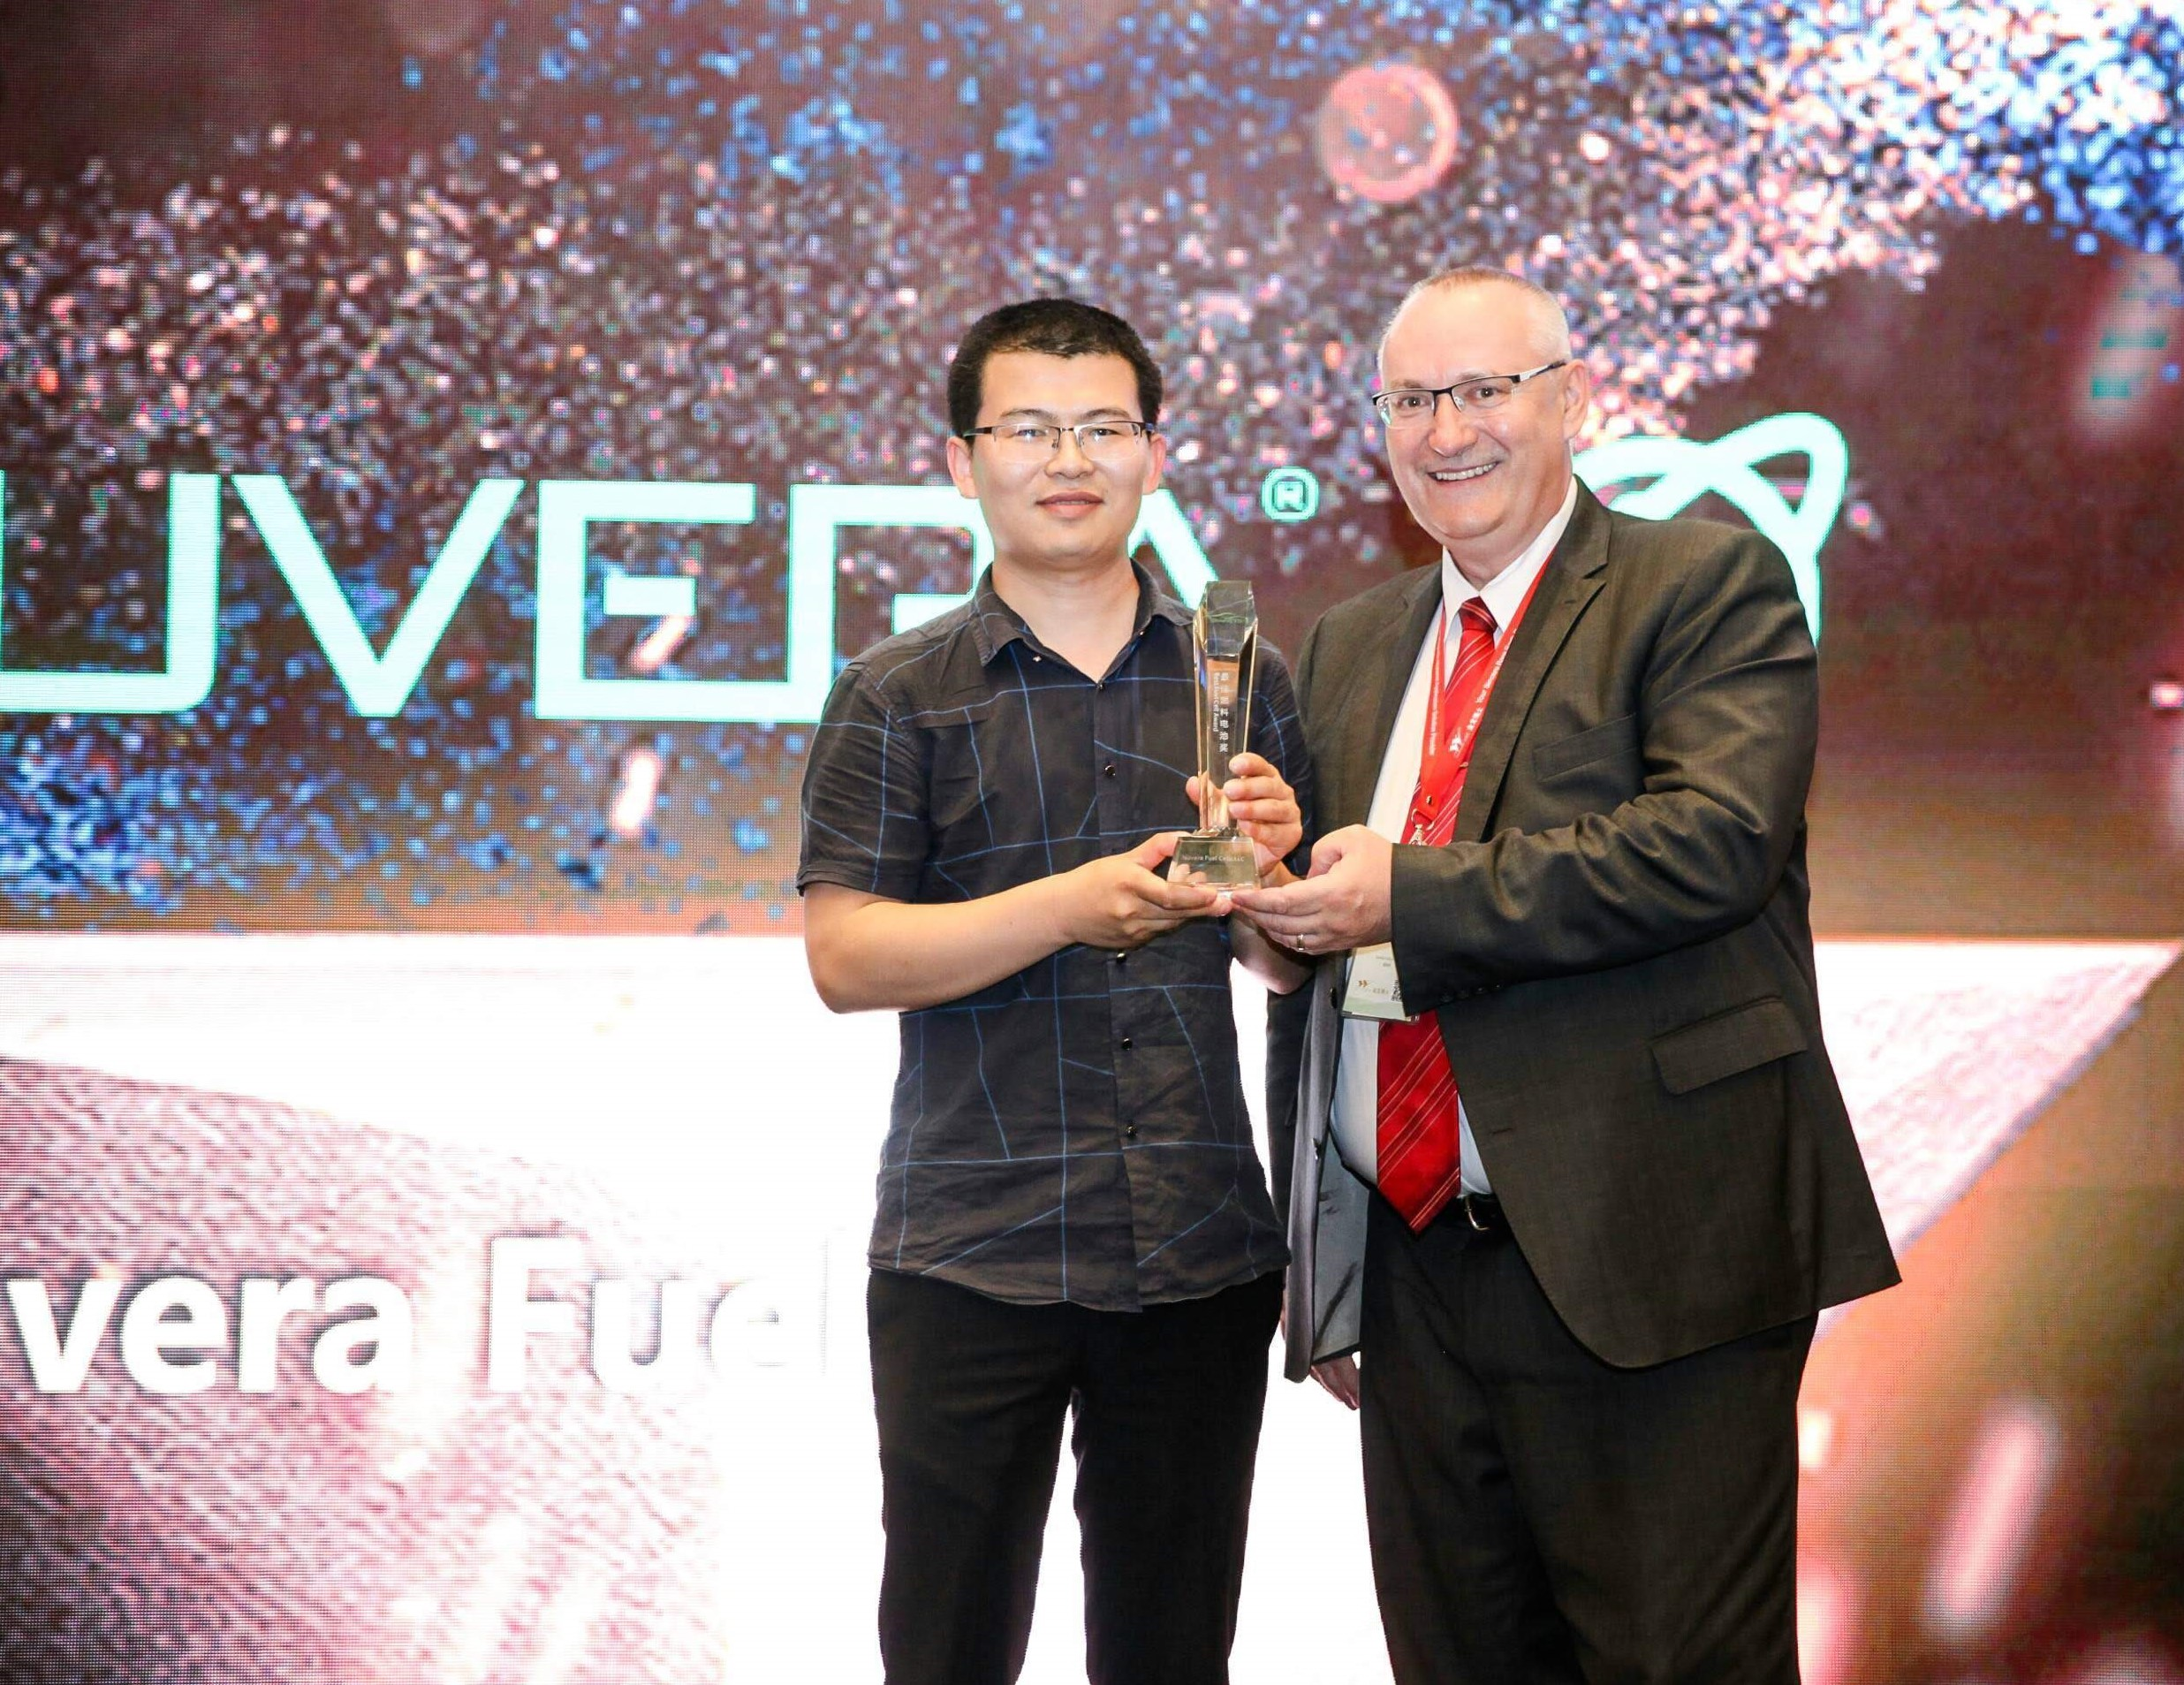 Nuvera Celebrating National Hydrogen and Fuel Cell Day